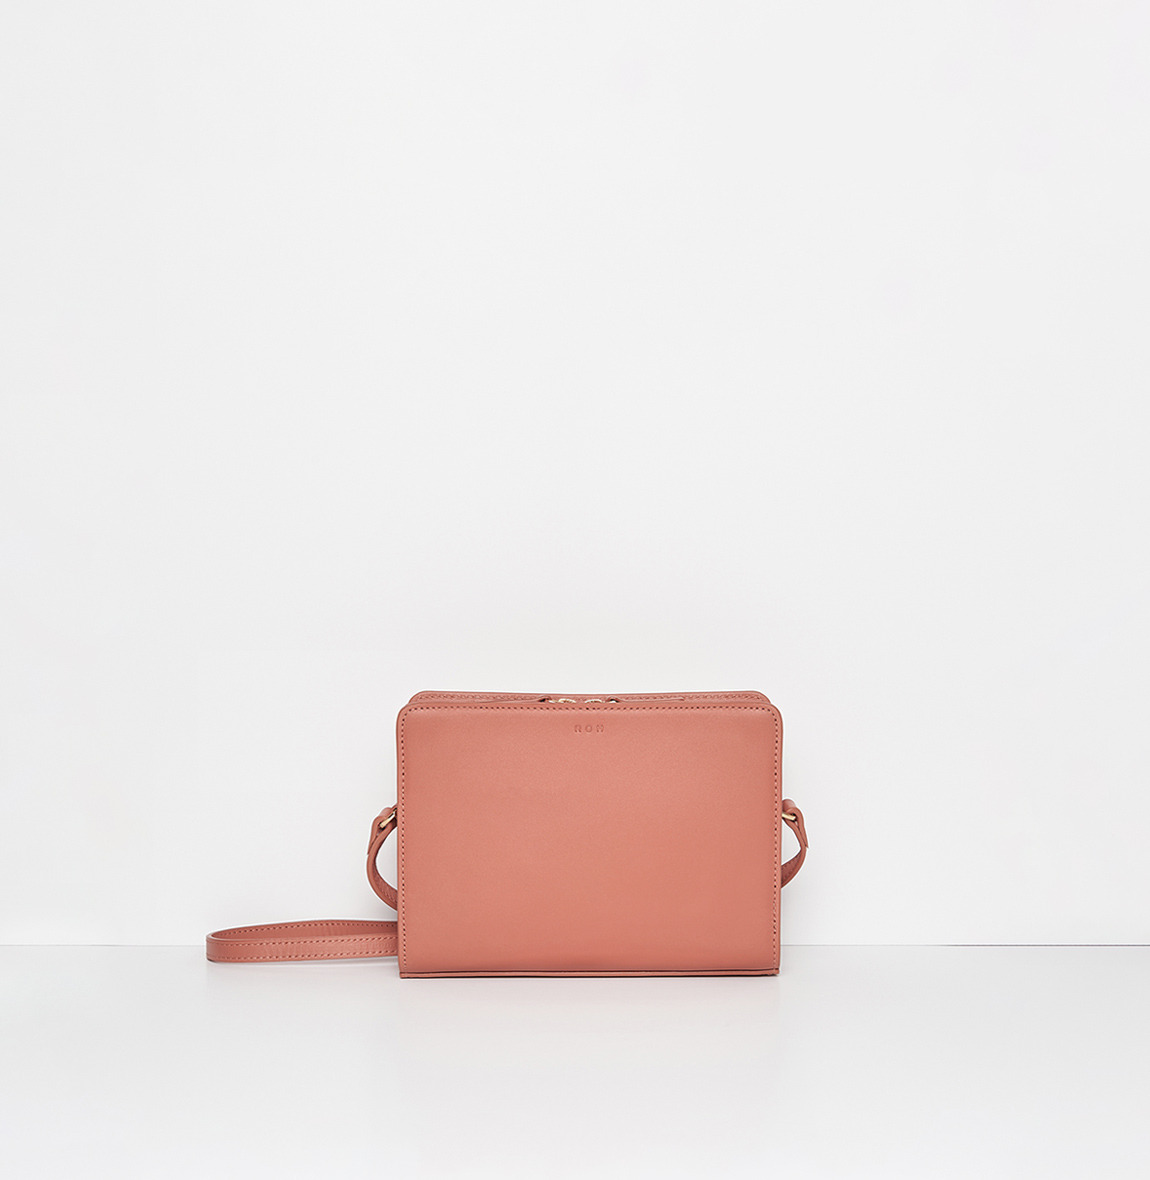 [한정기간10%할인] ROH Mini square bag Amber coral